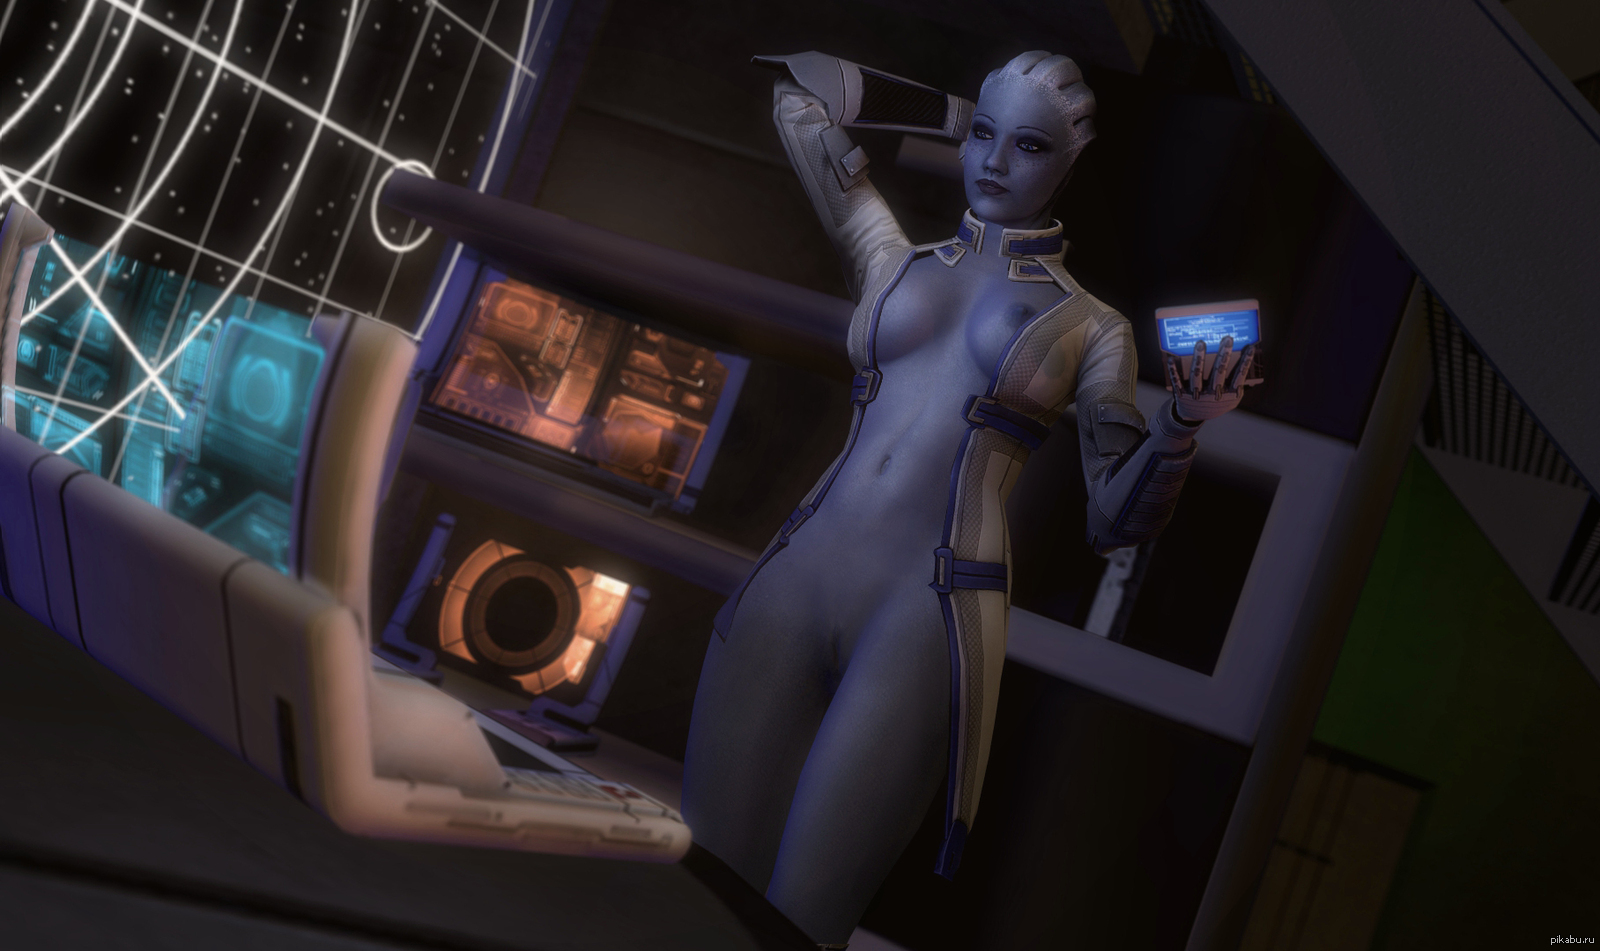 Mass effect female character porn mod nudes videos